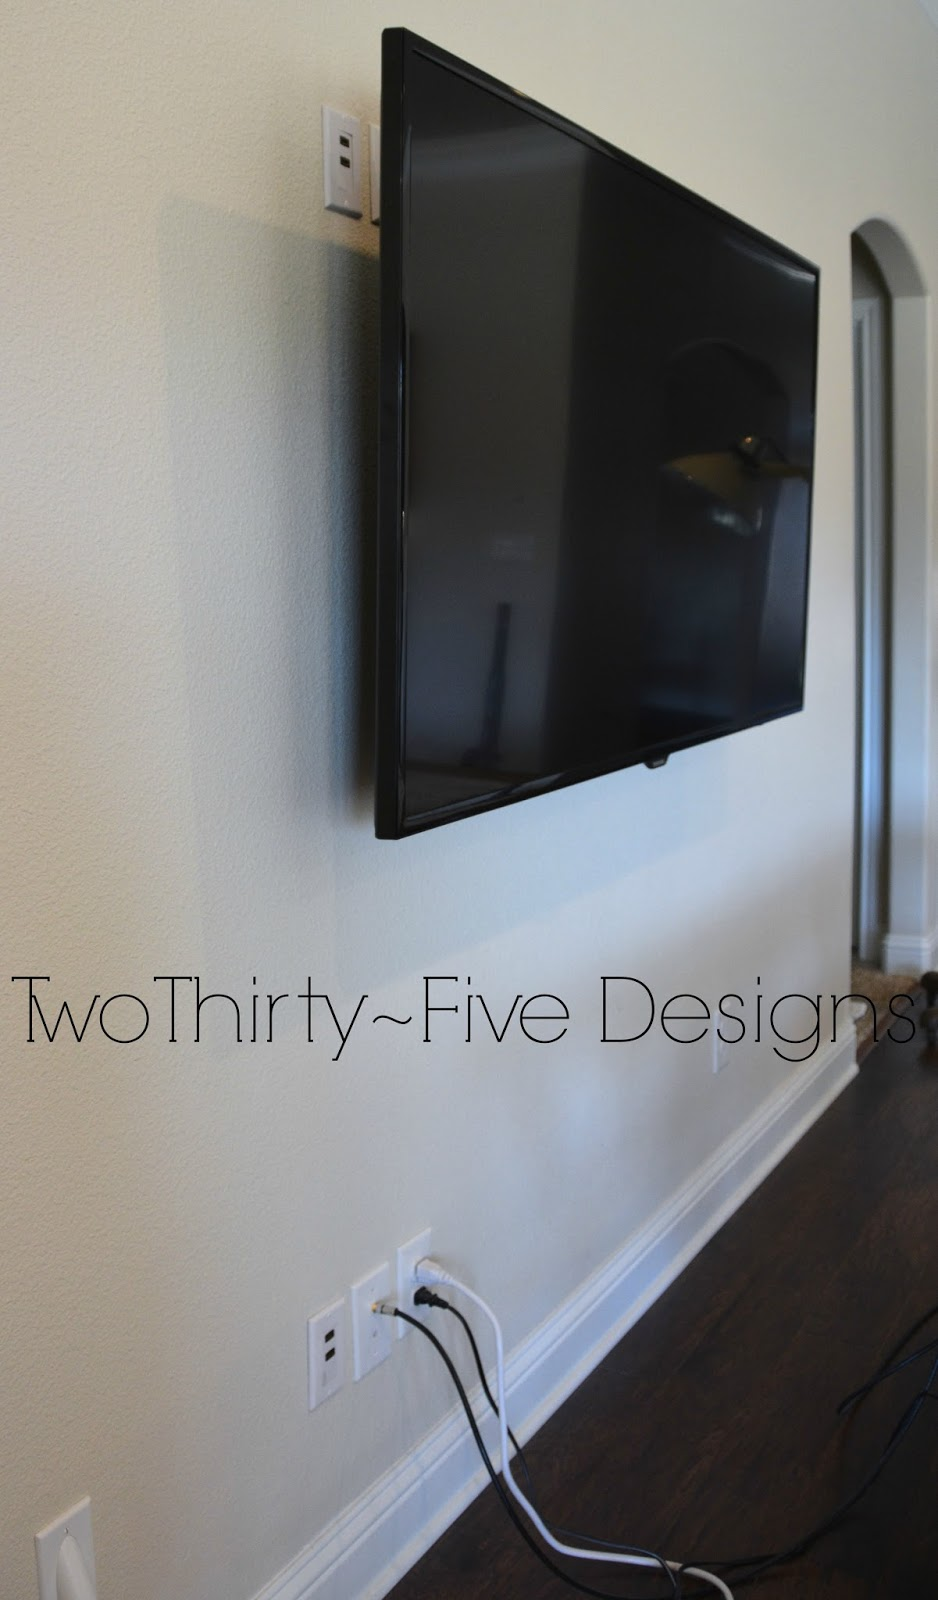 DIY Wall Mounted Television & Hidden Cords - Two Thirty-Five Designs